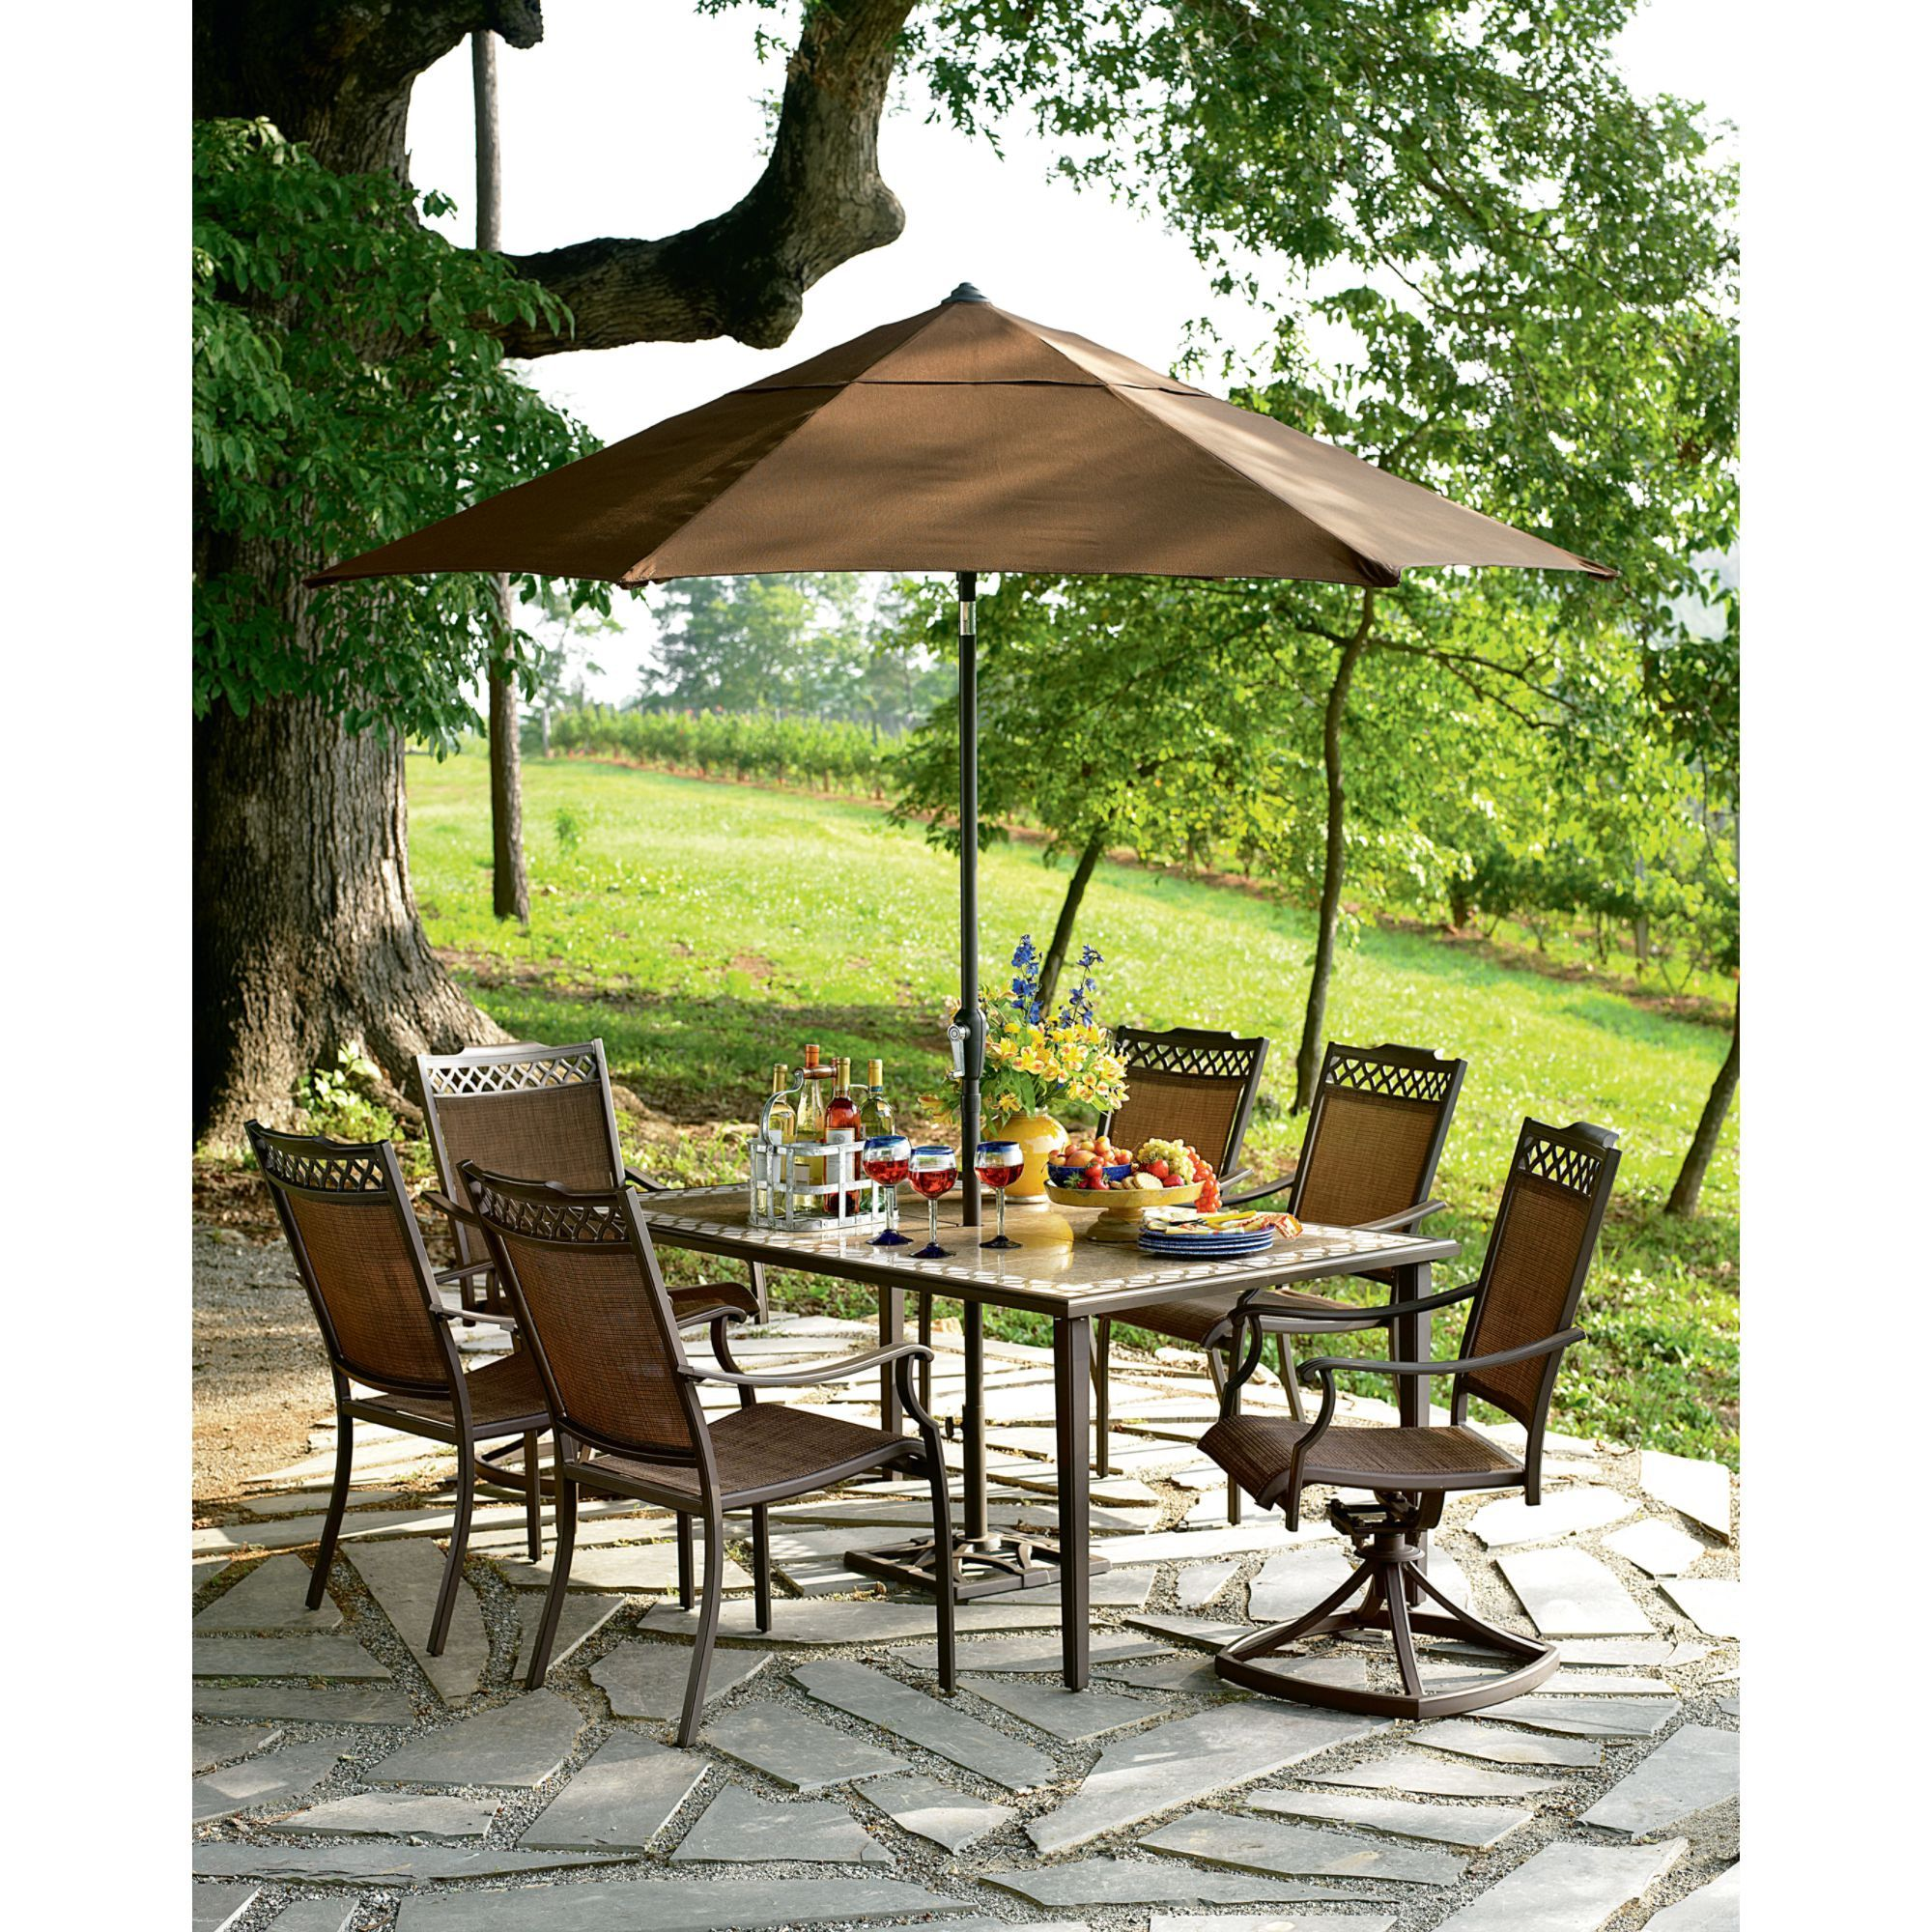 Country Living Outdoor Furniture - Cool Storage Furniture ... on Living Spaces Outdoor Dining id=82248